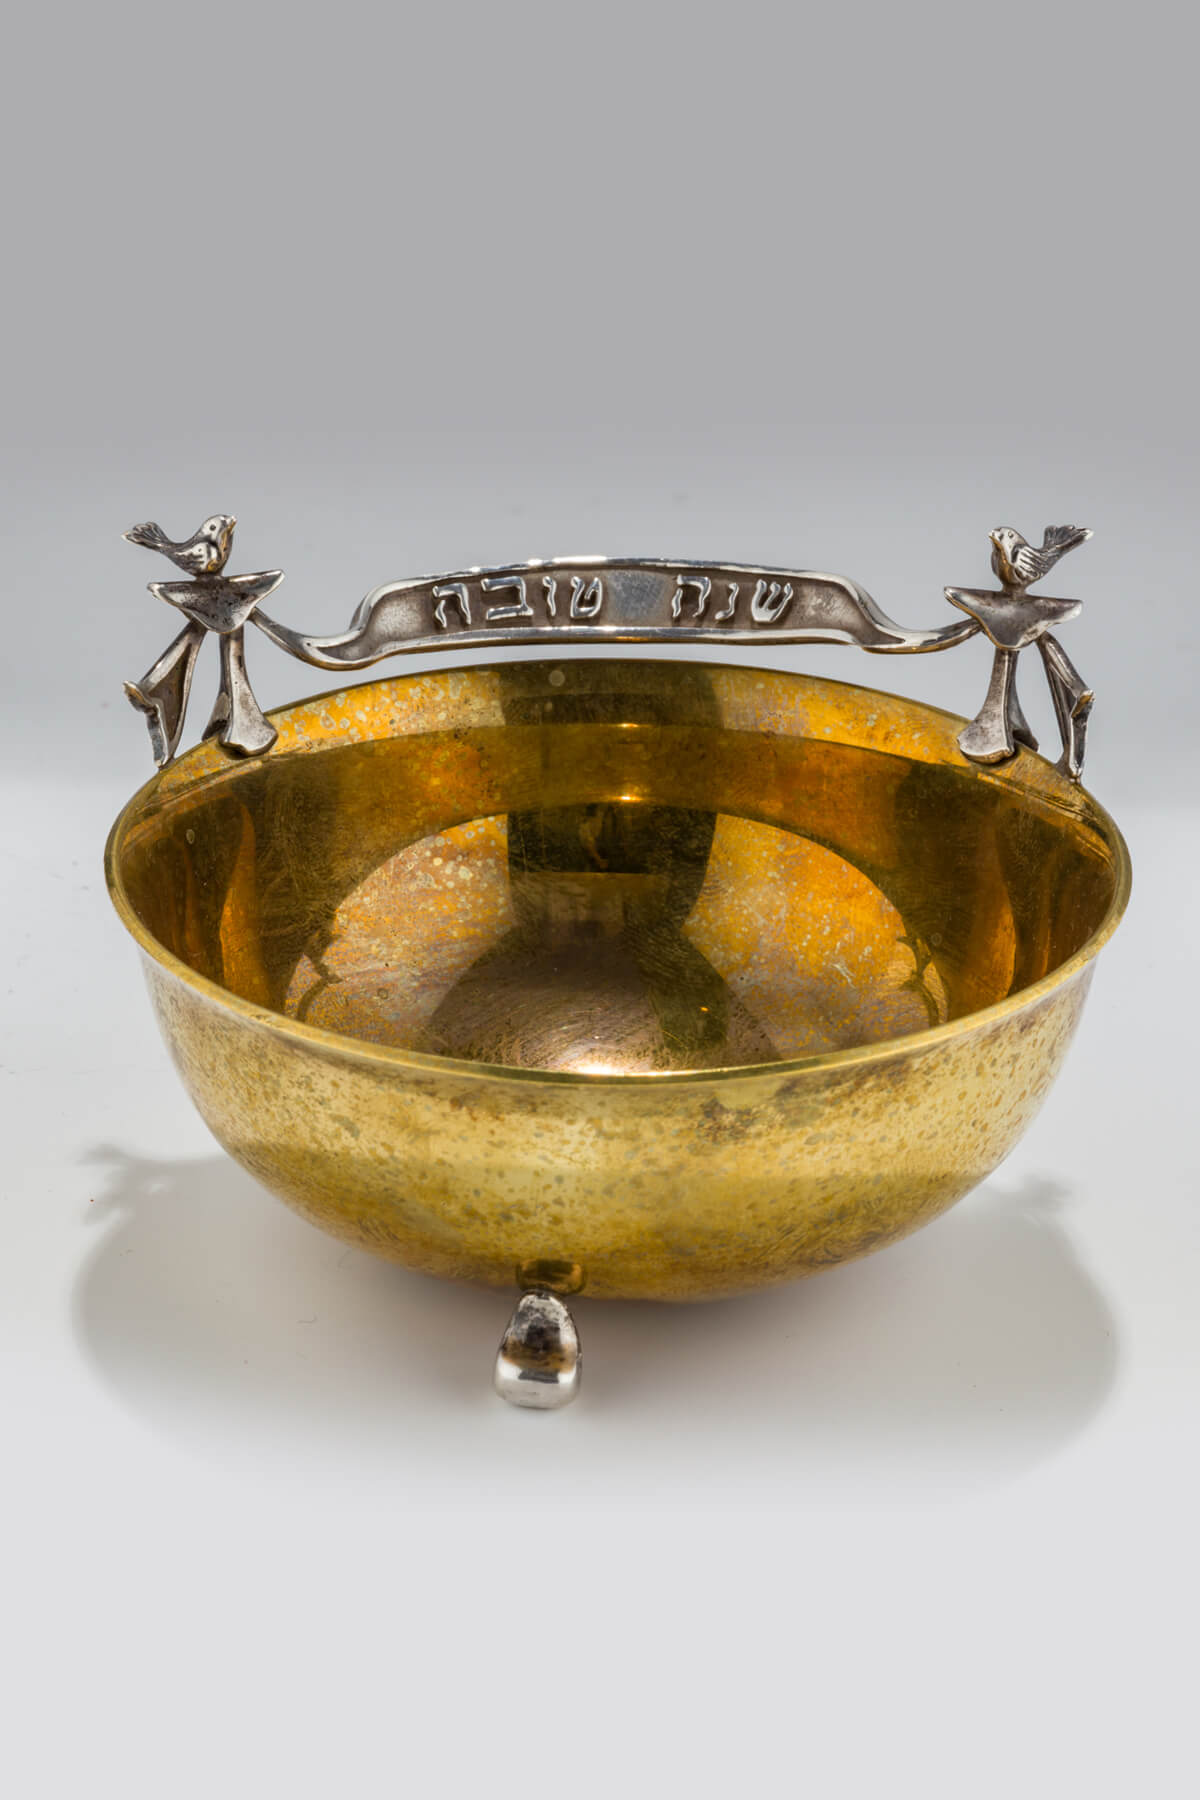 125. A Sterling and Brass Honey Dish by Dudek Swed